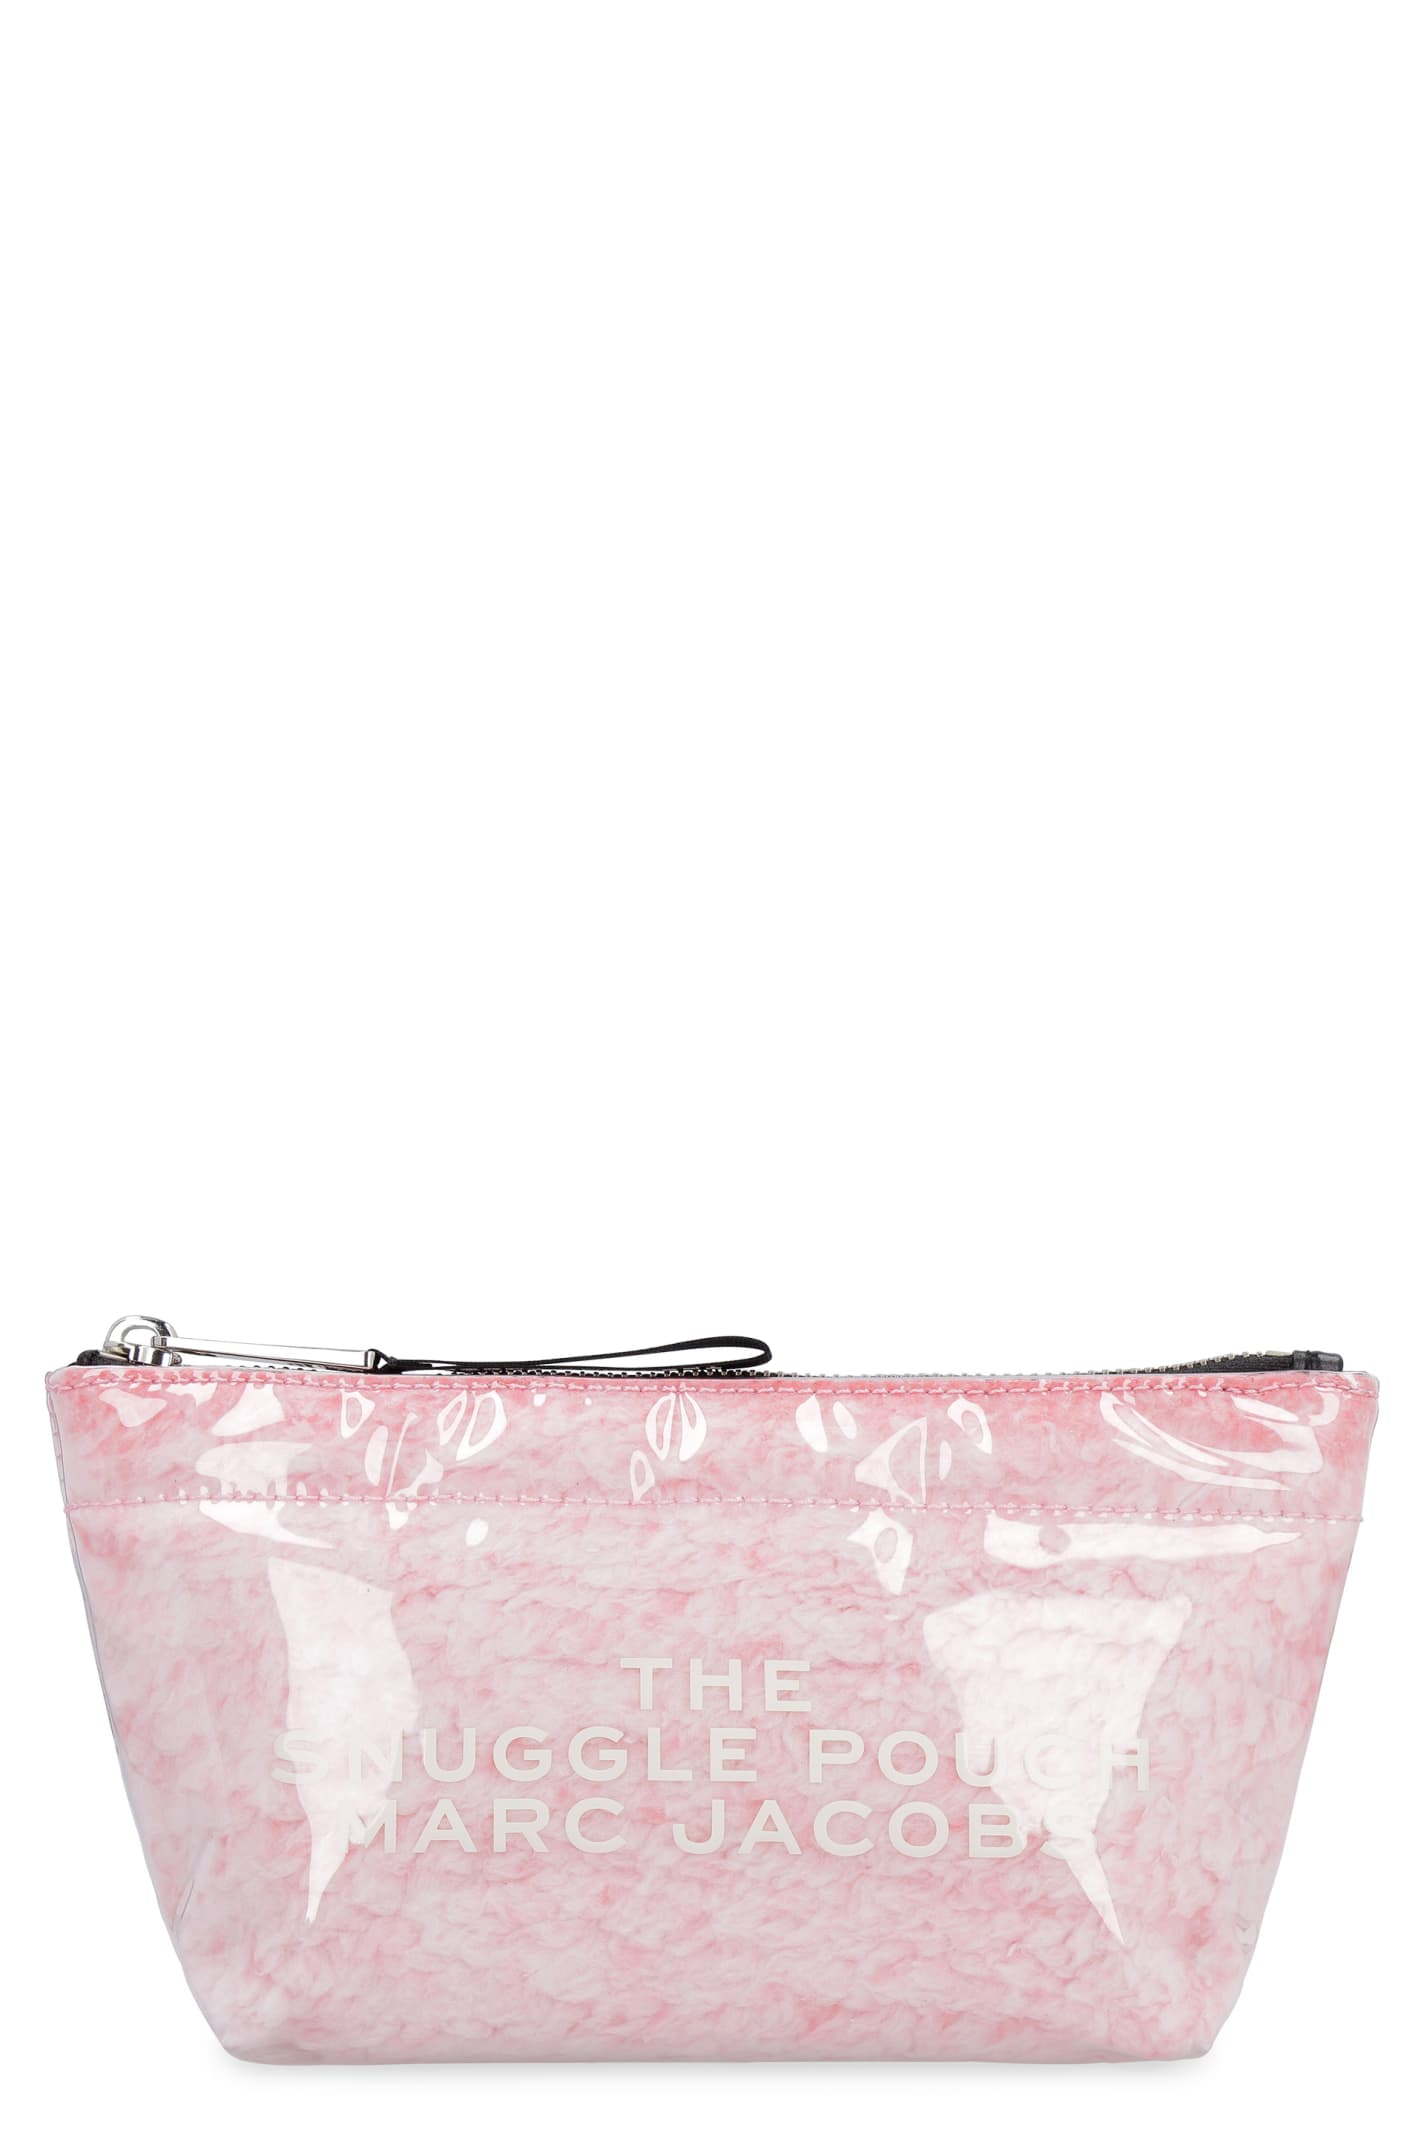 Marc Jacobs The Snuggle Pvc Wash Bag